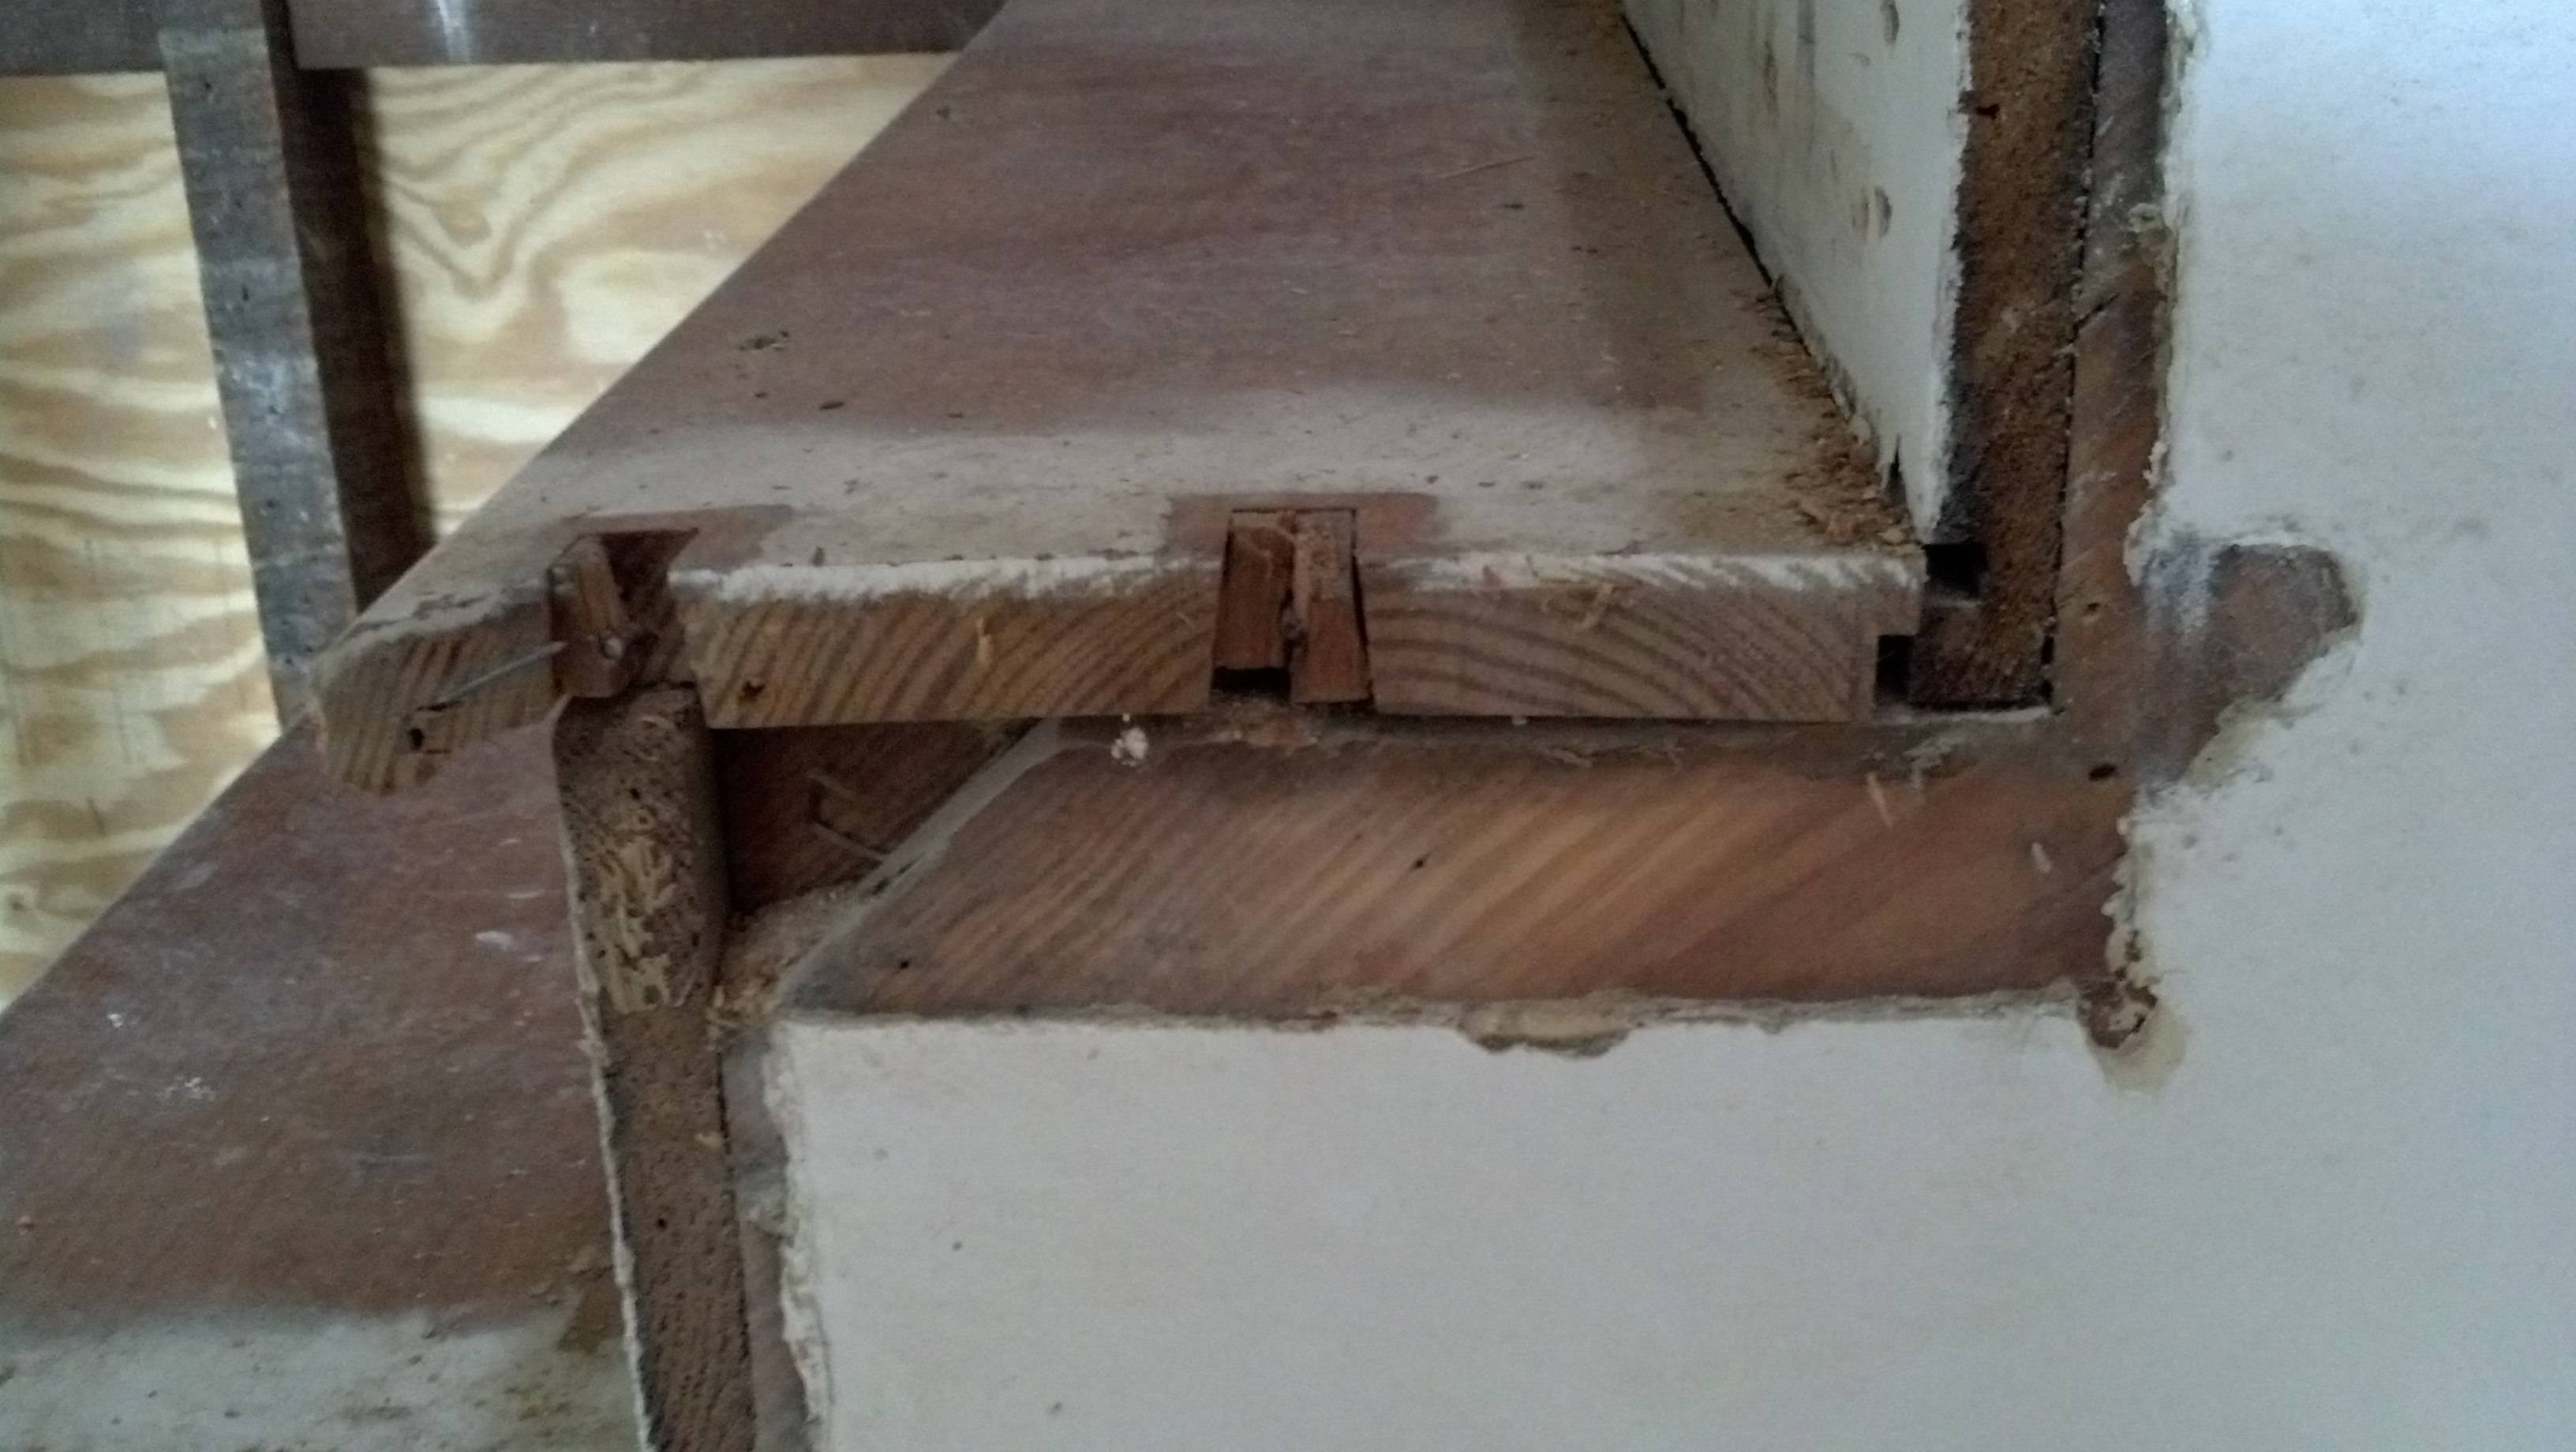 hardwood floor nosing of how should stair treads and risers be assembled home improvement with regard to see picture enter image description here